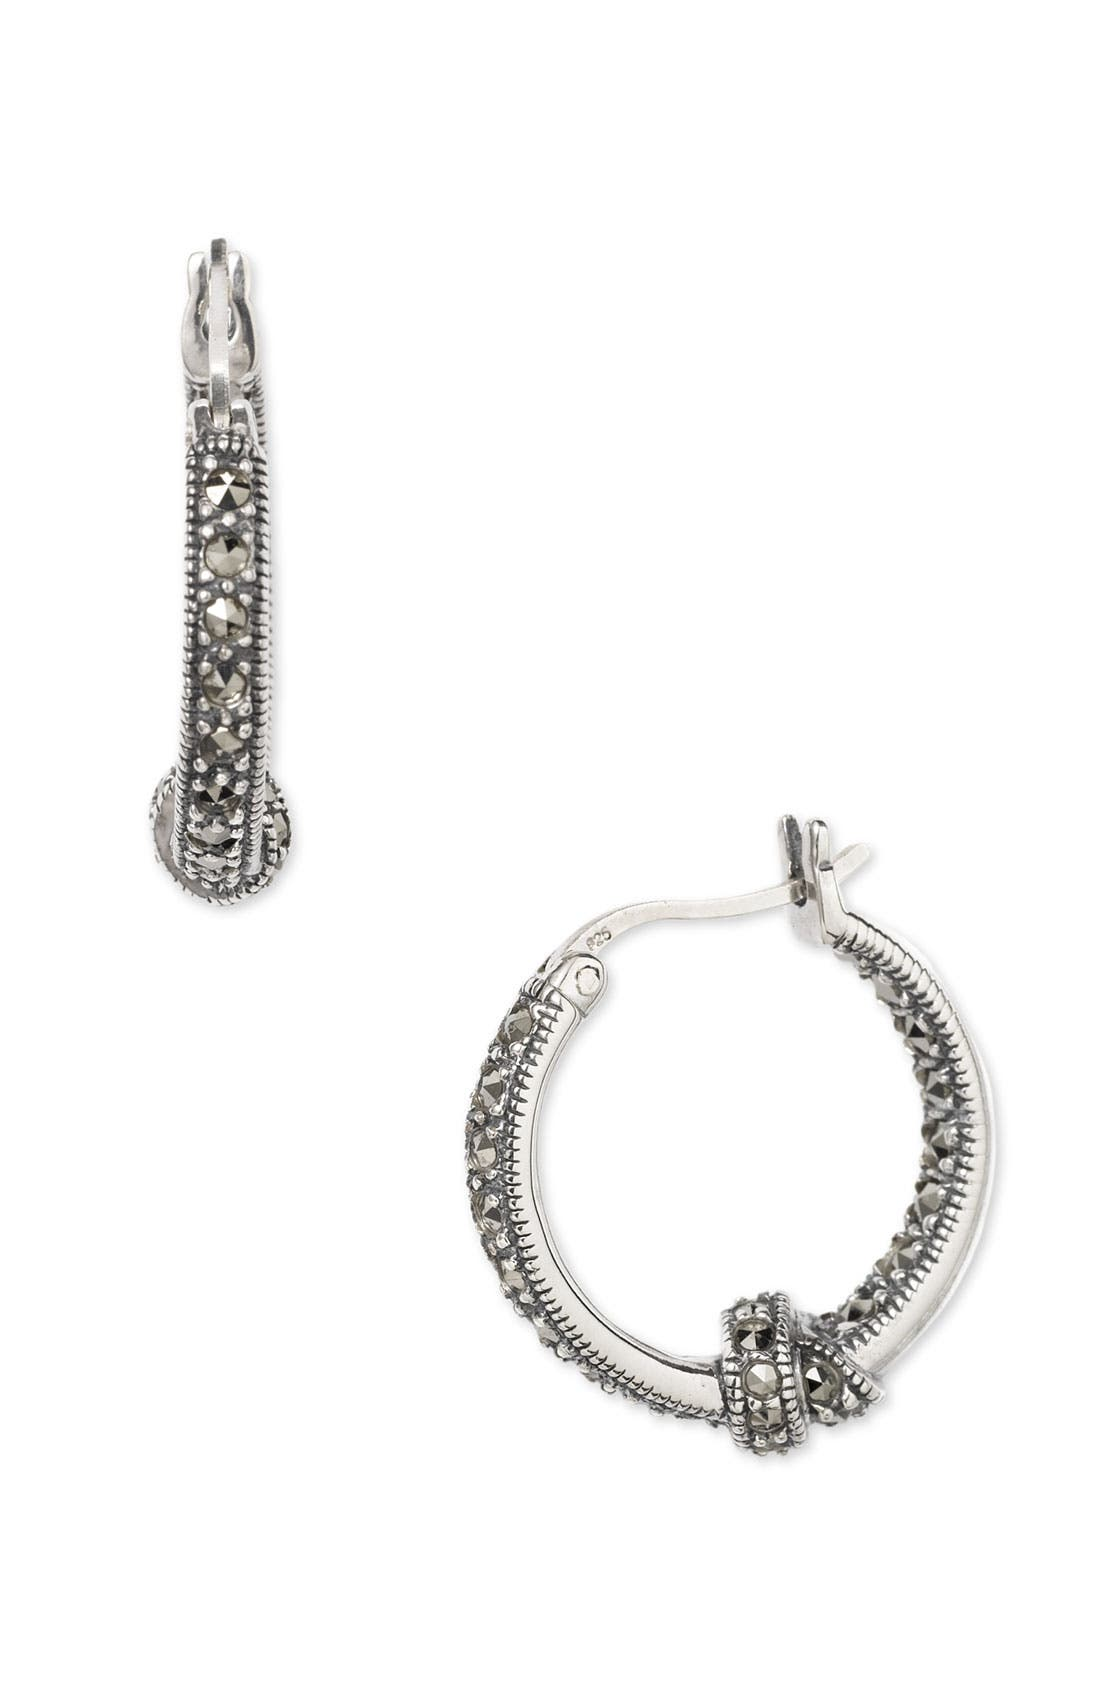 Main Image - Judith Jack Marcasite Hoop Earrings with Knot Detail